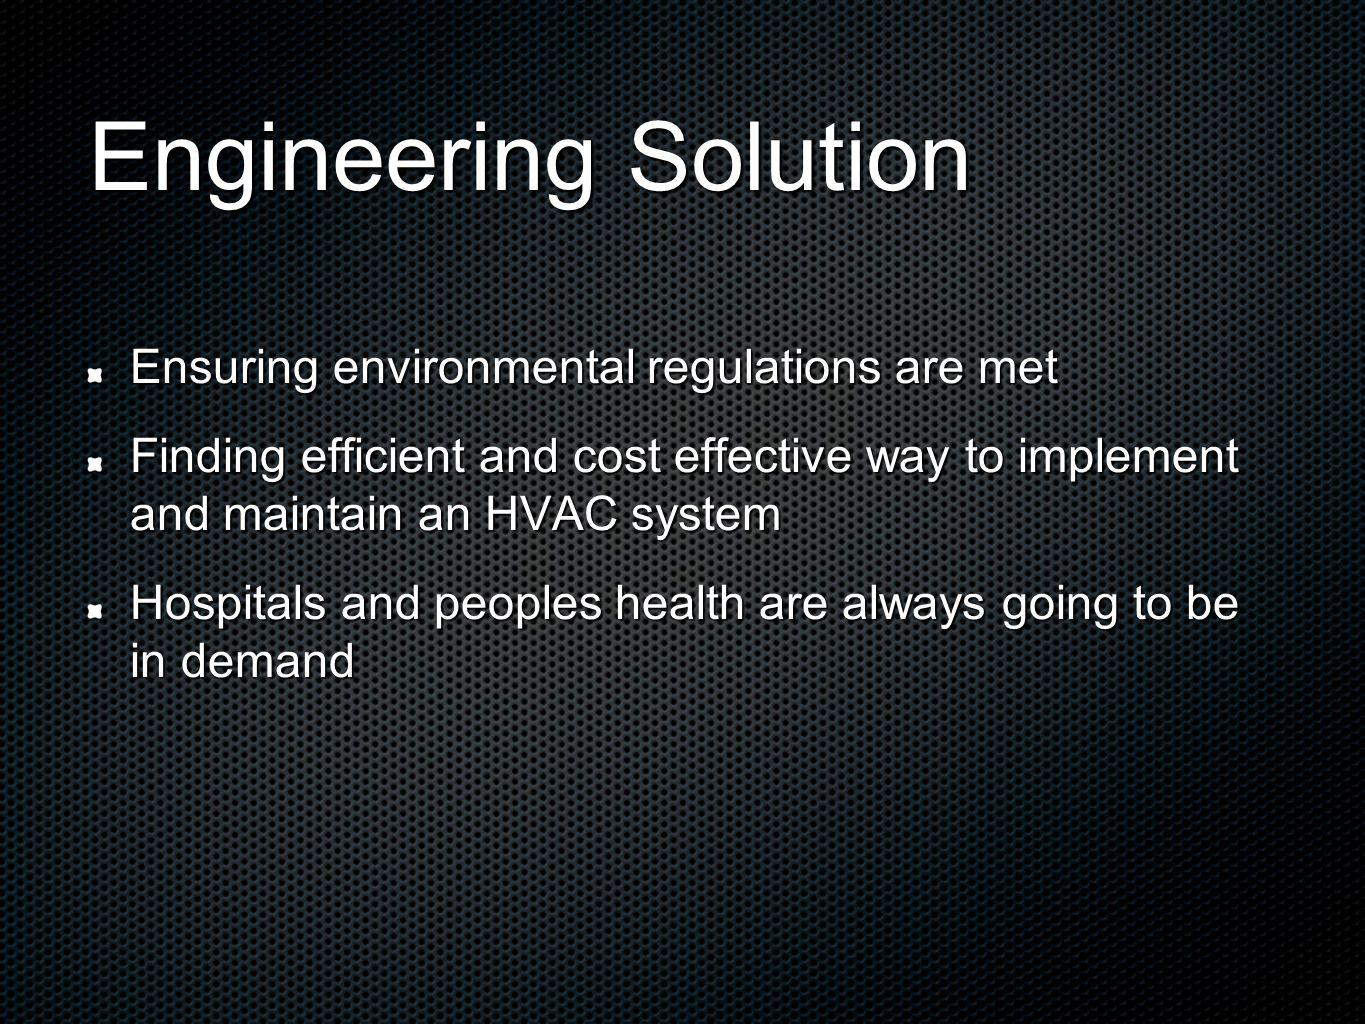 Engineering Solution Ensuring environmental regulations are met Finding efficient and cost effective way to implement and maintain an HVAC system Hosp